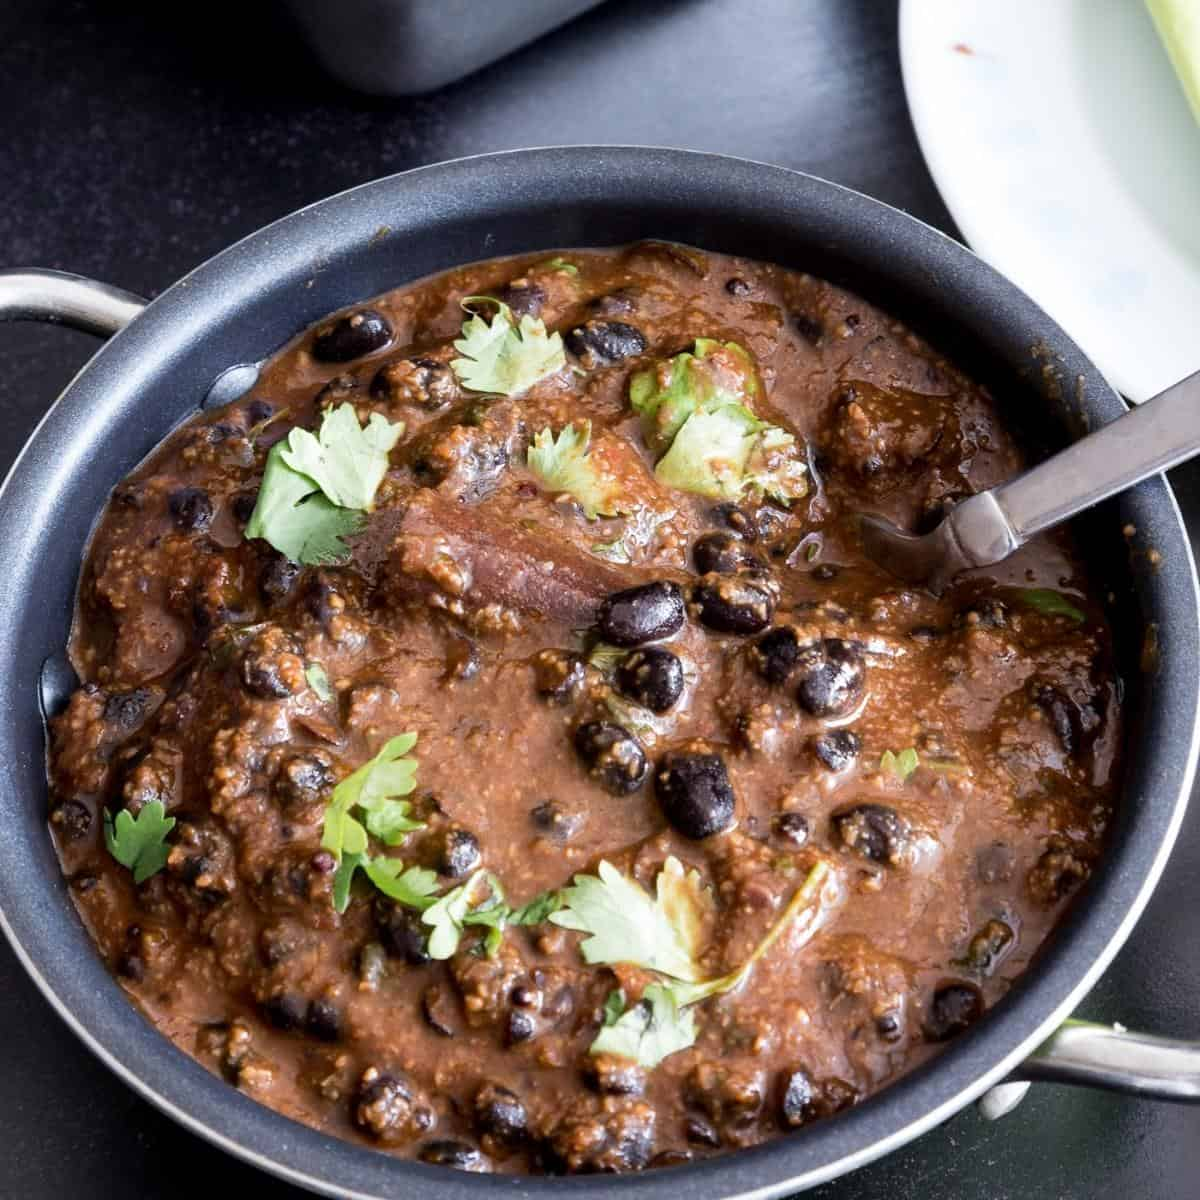 A bowl of black beans curry.